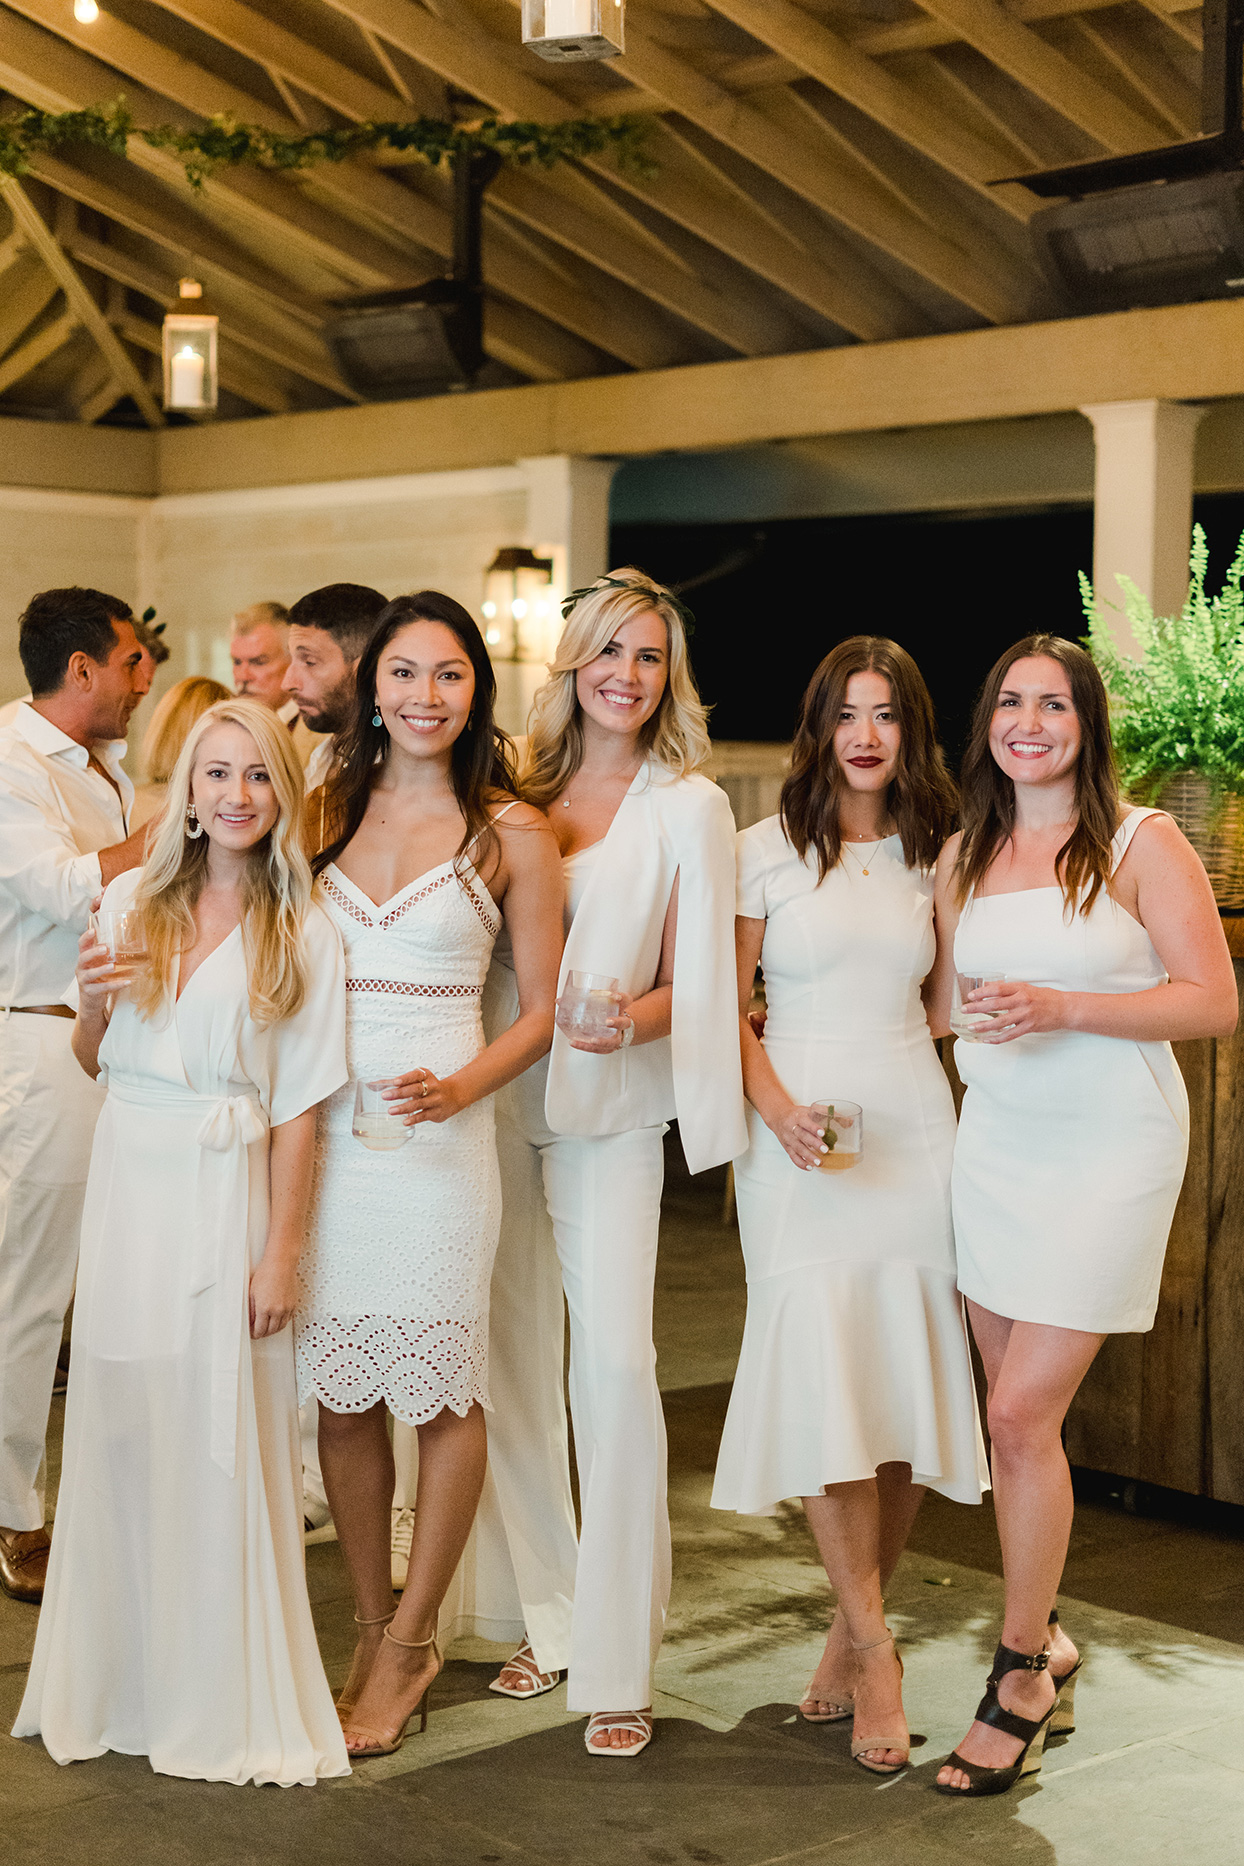 guests dressed in white posing with drinks at rehearsal dinner